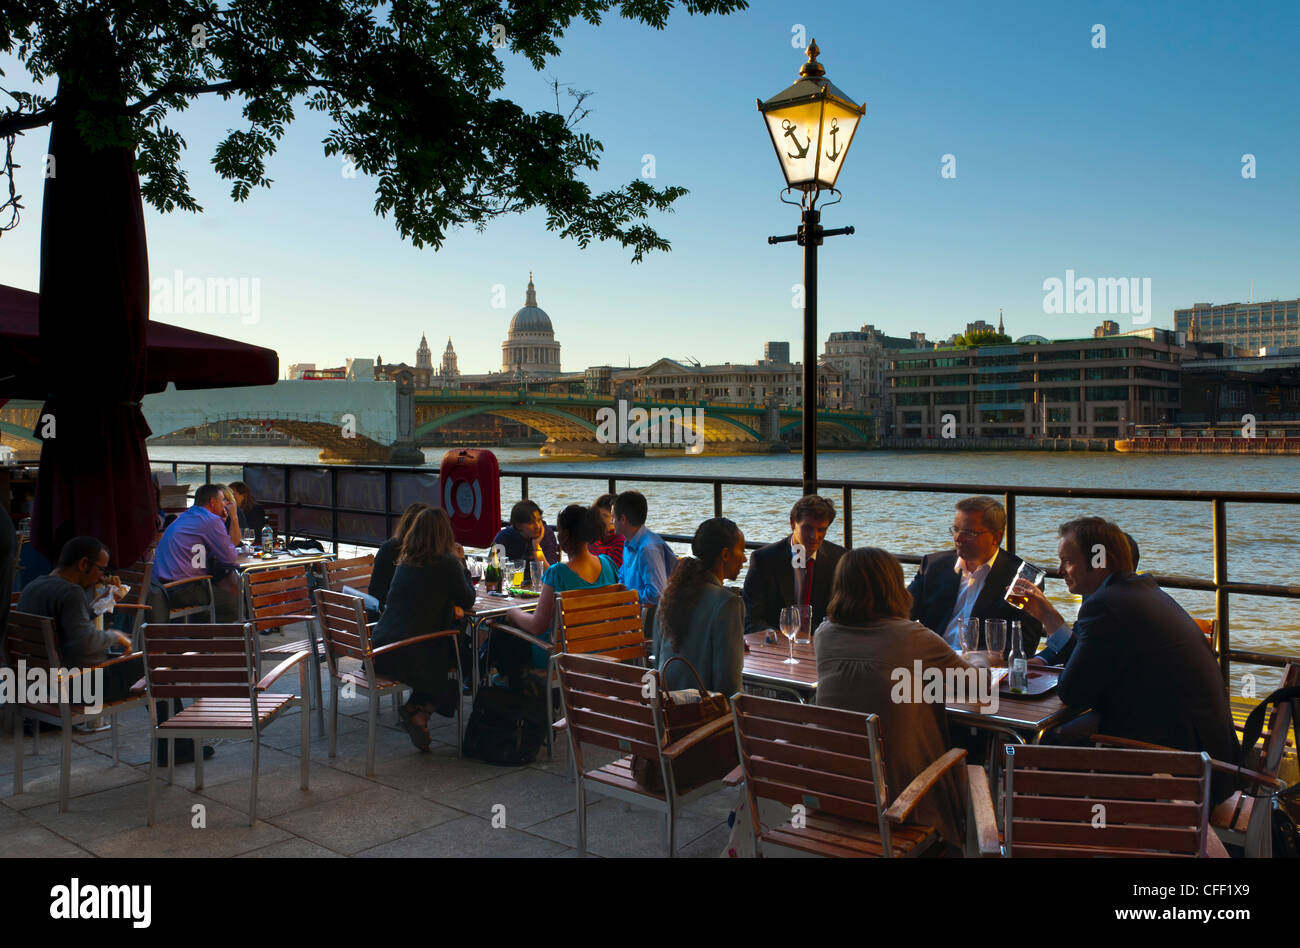 St. Paul's Cathedral from Southwark river bank, London, England, United Kingdom, Europe Stock Photo